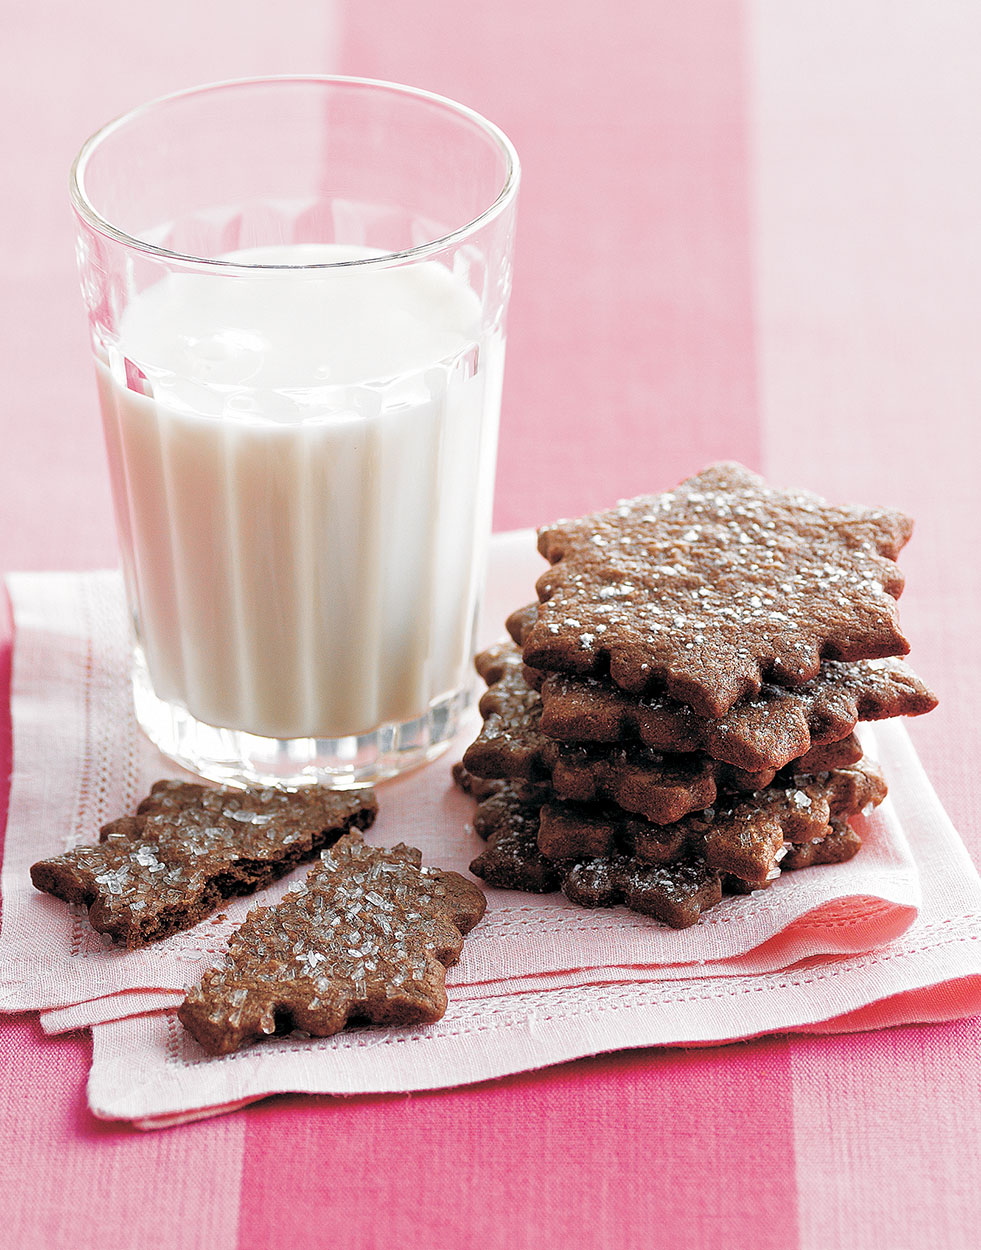 Chocolate-Gingerbread Cookies